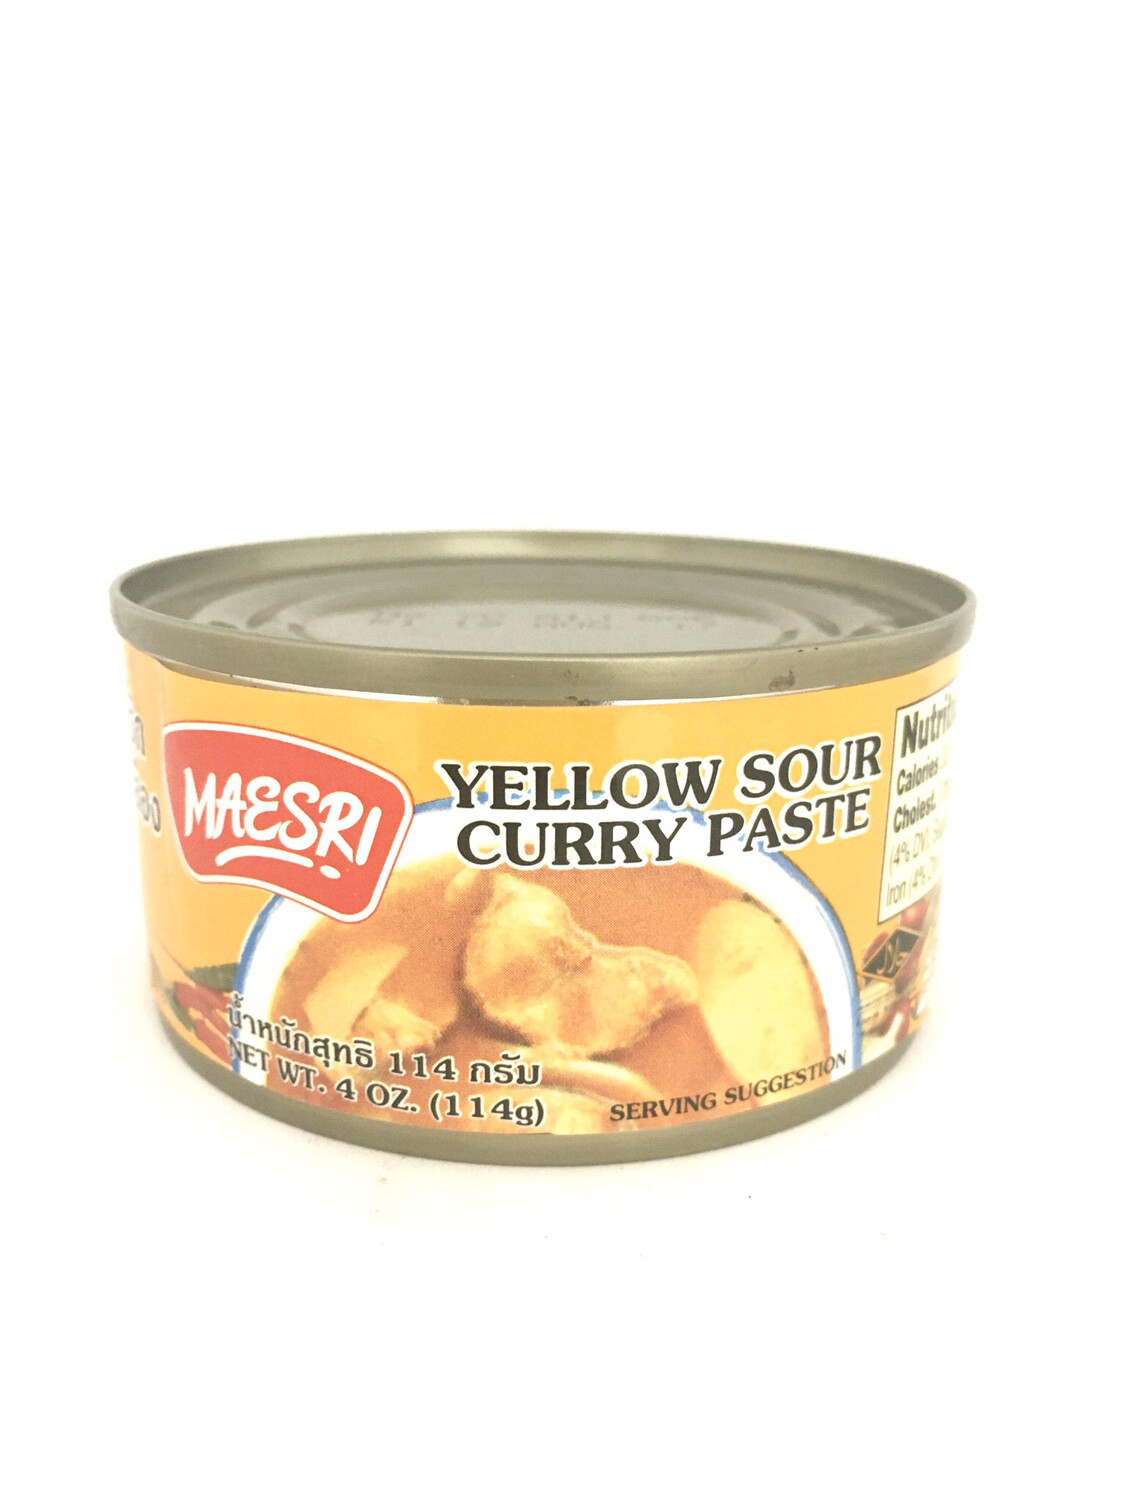 MAESRI YELLOW CURRY PASTE 48X114G